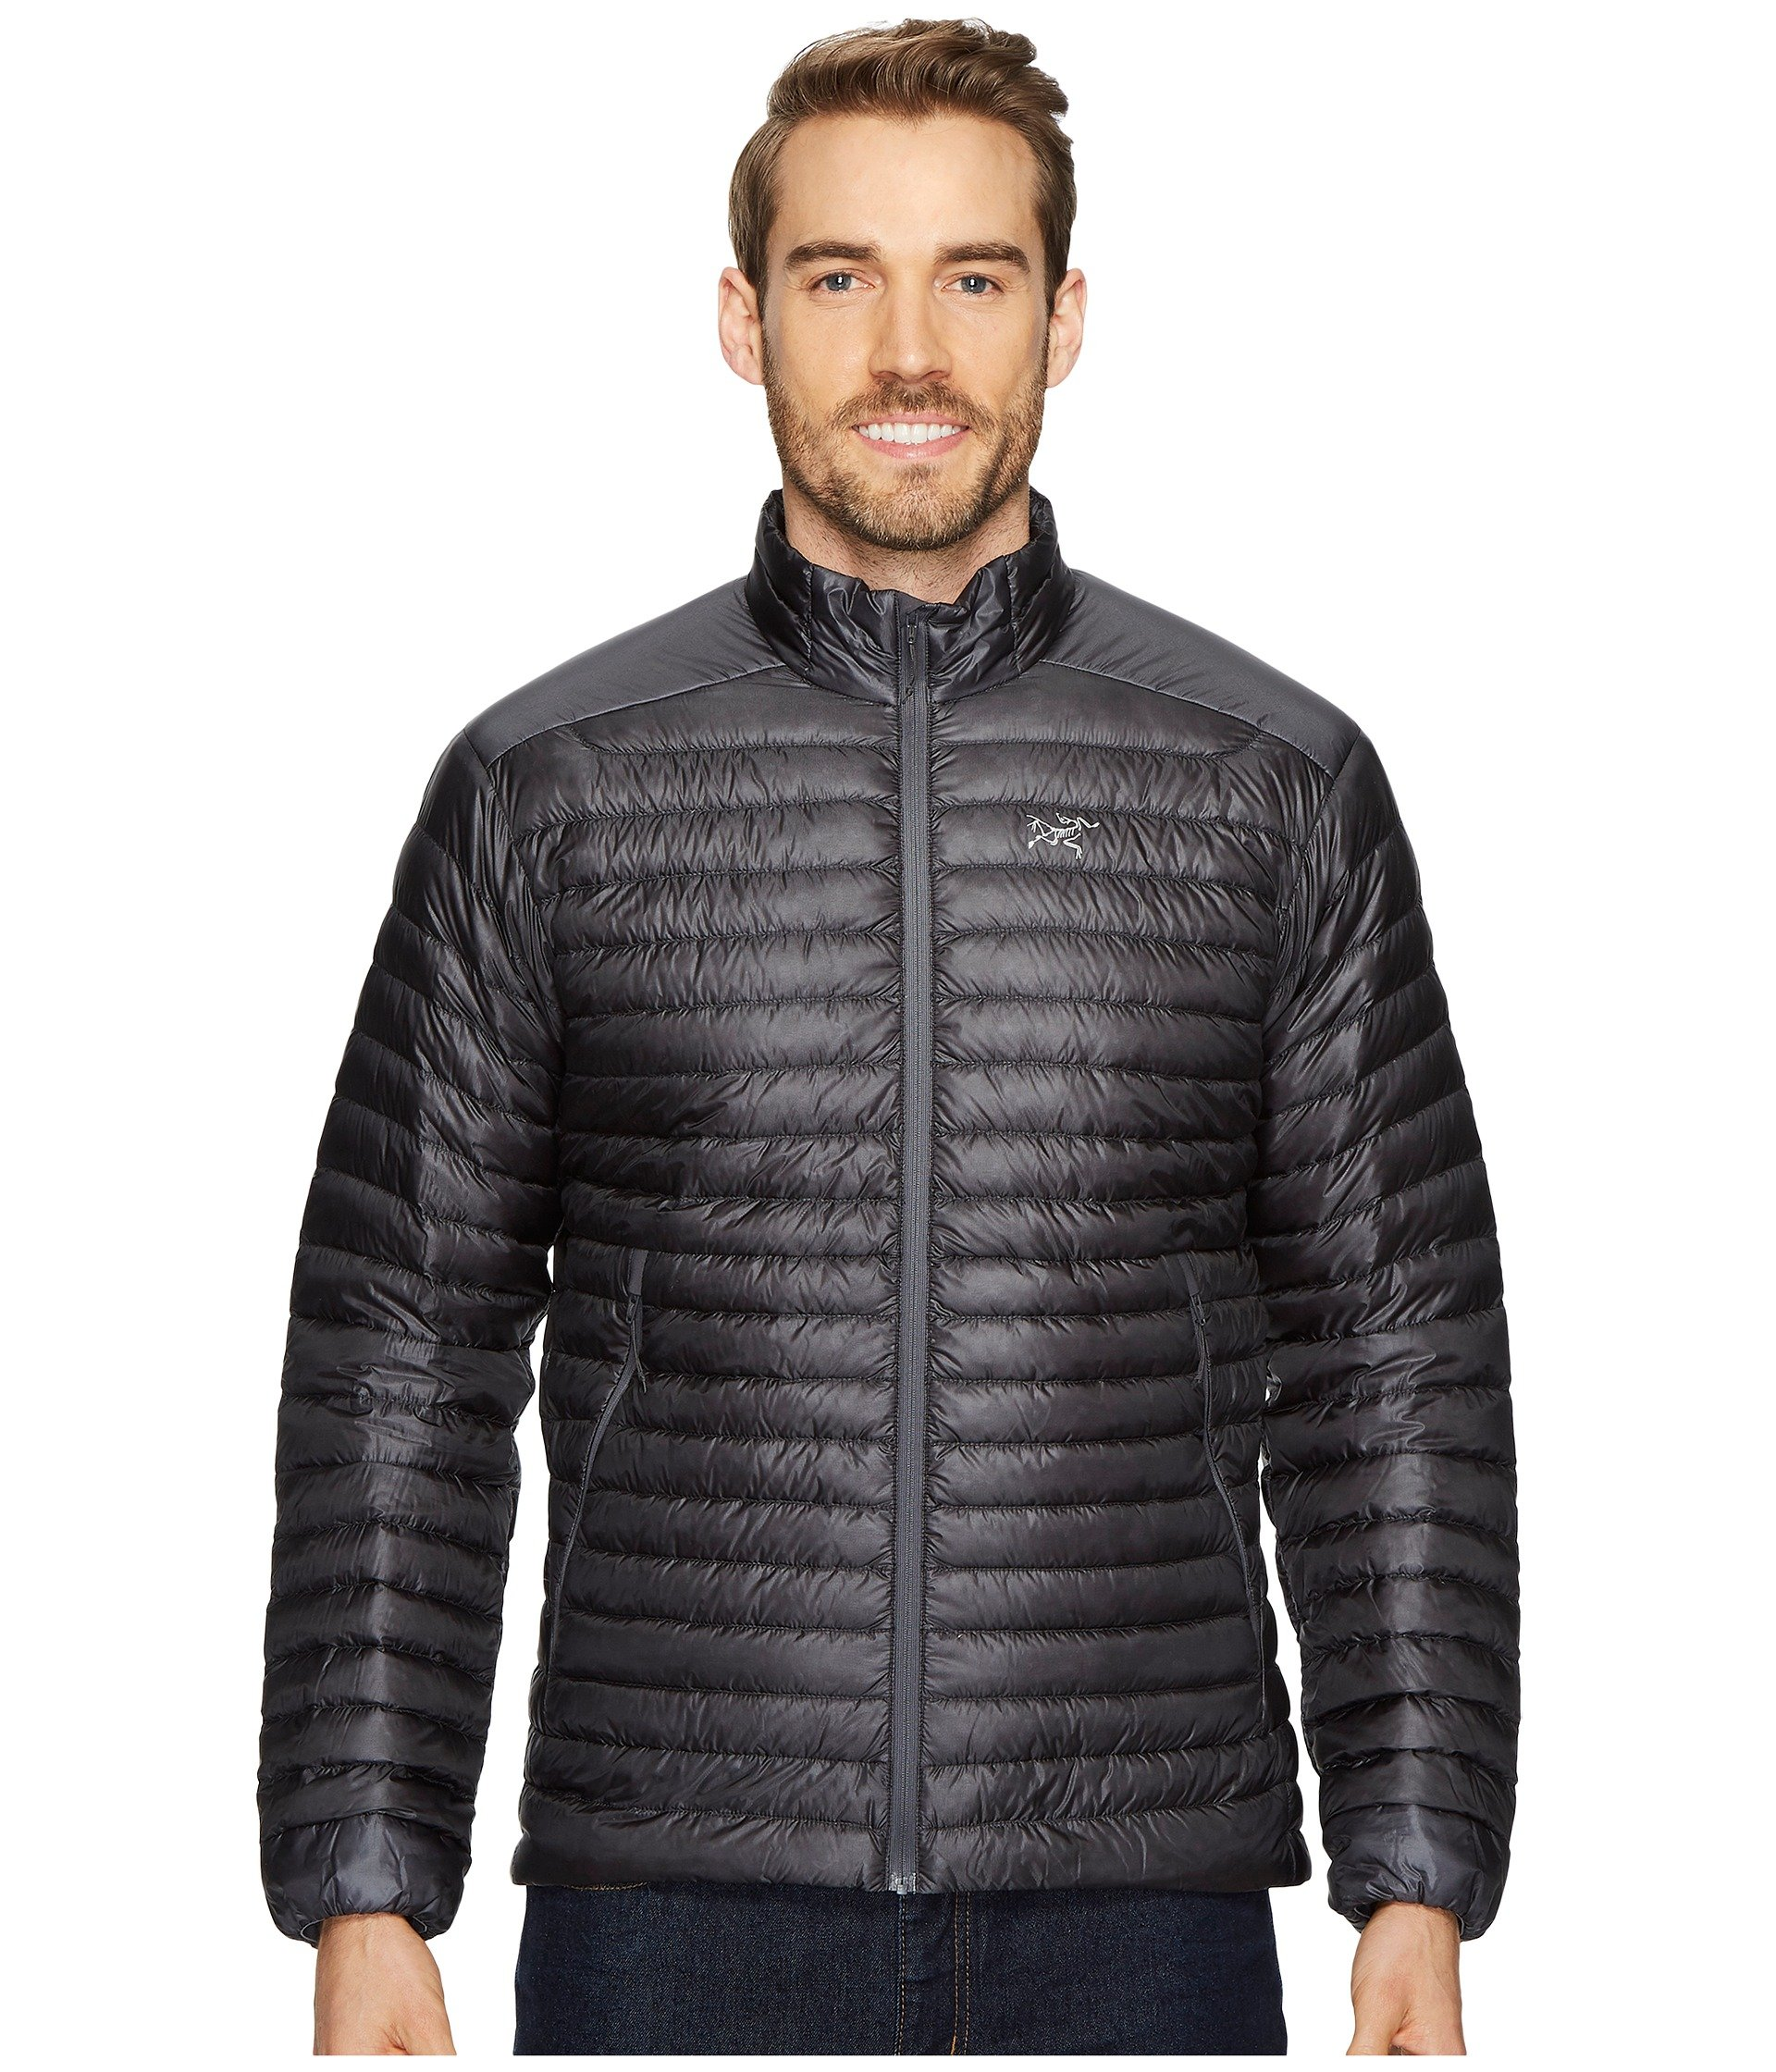 ARC'TERYX Cerium SL Jacket Men's (Pilot, Small) by Arc'teryx